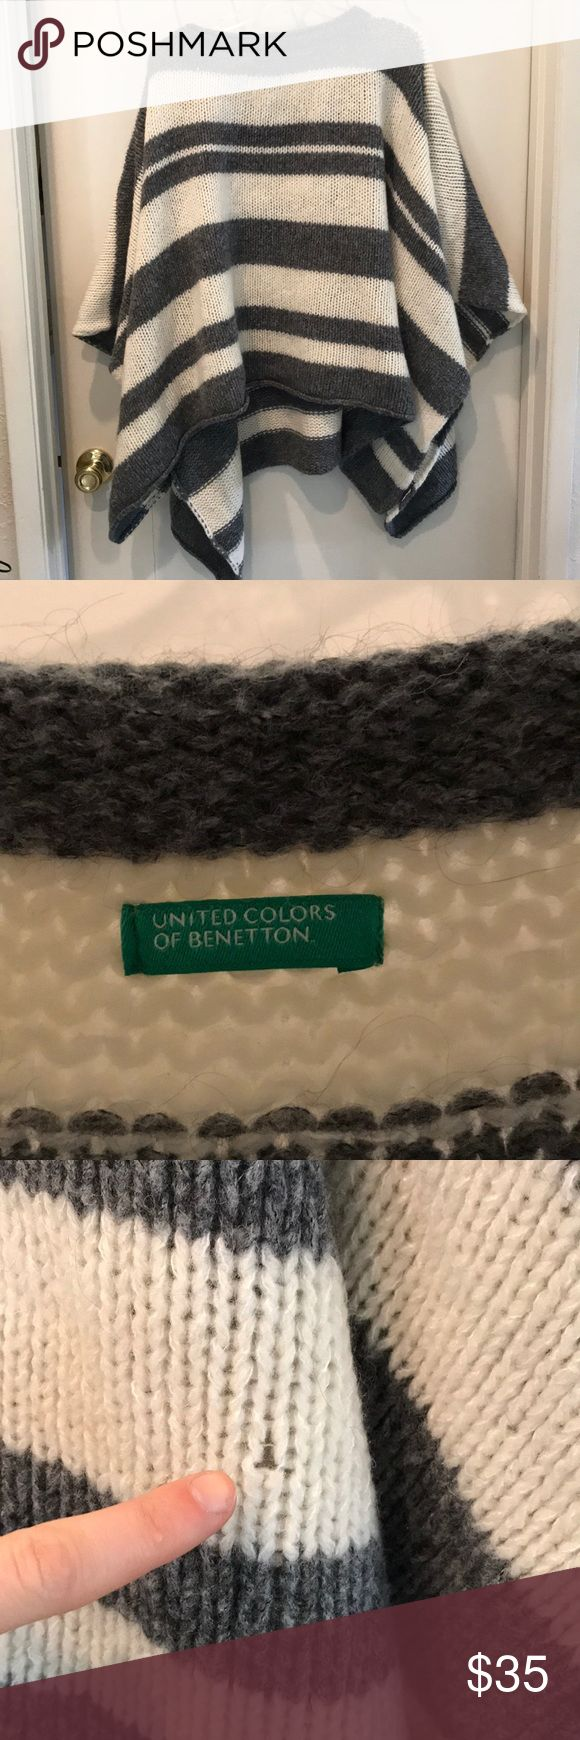 United colors of Benetton poncho One size fits all United colors of Benetton brand. Grey and white stripped poncho. One minor hole as seen in pic! Super warm and cozy! Great to throw over to make an outfit look put together United Colors Of Benetton Sweaters Shrugs & Ponchos